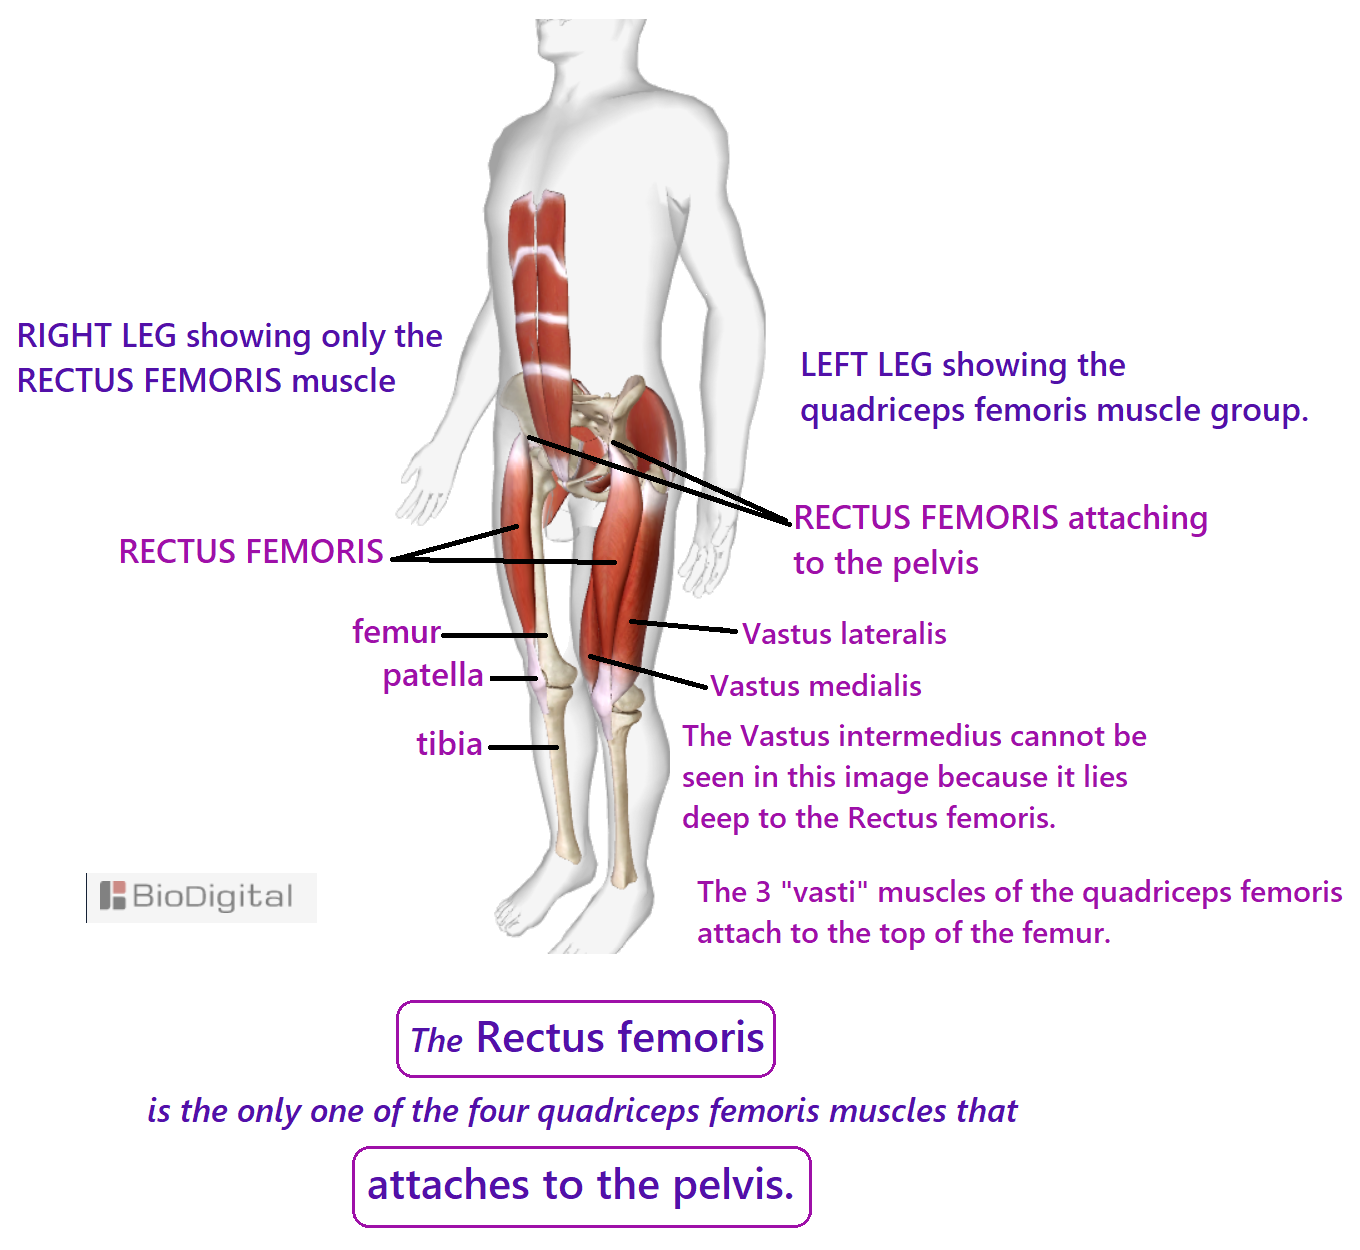 left leg showing the rectus femoris muscle, right leg showing the quadriceps femoris muscles - rectus femoris vastus medialis and vastus lateralis can be seen. The vastus intermedius lies deep to the rectus femoris. The rectus femoris is the only muscle of the quadriceps group that attaches to the pelvis. The 3 vasti muscles attach to the top of the femur. The distal tendons of the four muscles merge to form the common tendon of the quadriceps - to kneecap - to tibia.